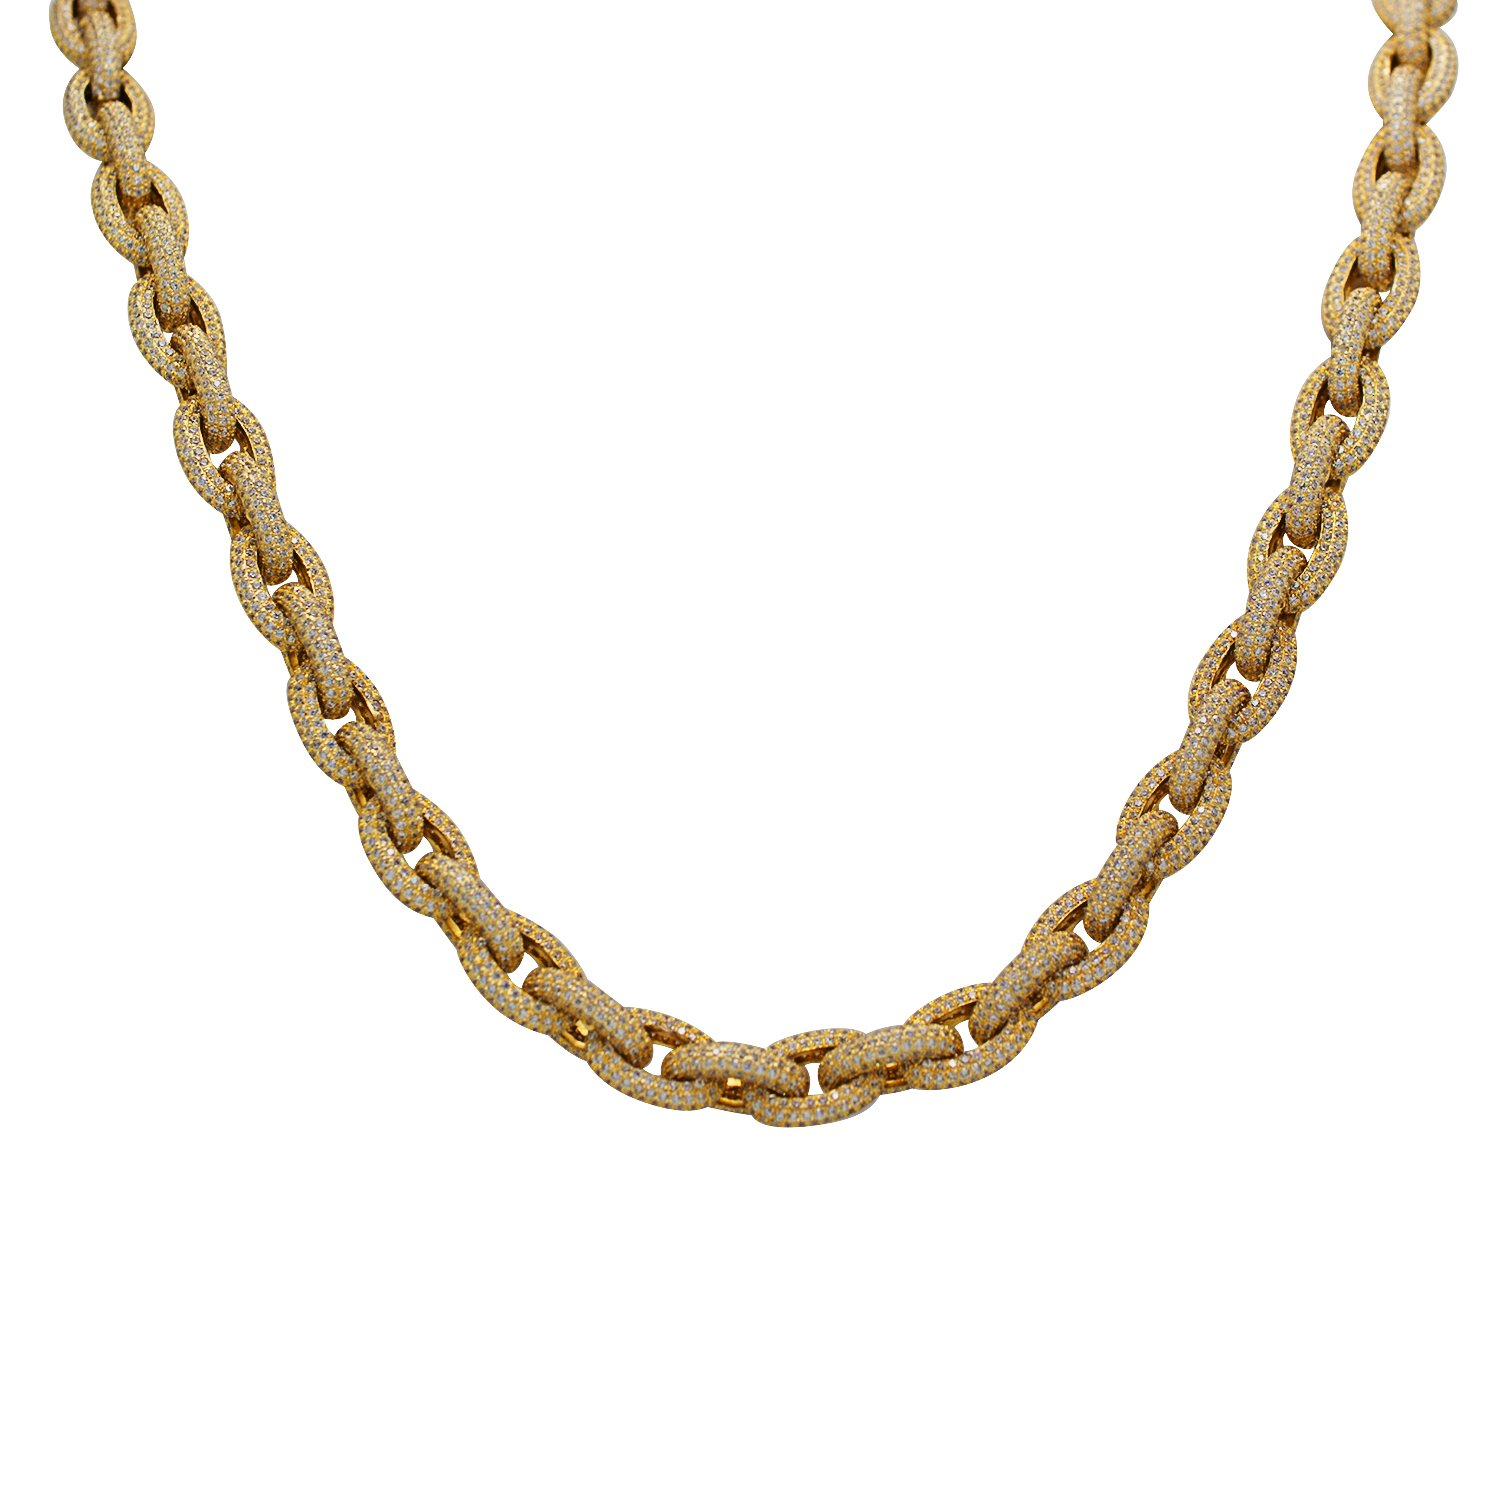 925 Sterling Silver Yellow Gold-Tone Full Iced Out Bling CZ Cubic Zirconia Open Link Necklace Chain 30''